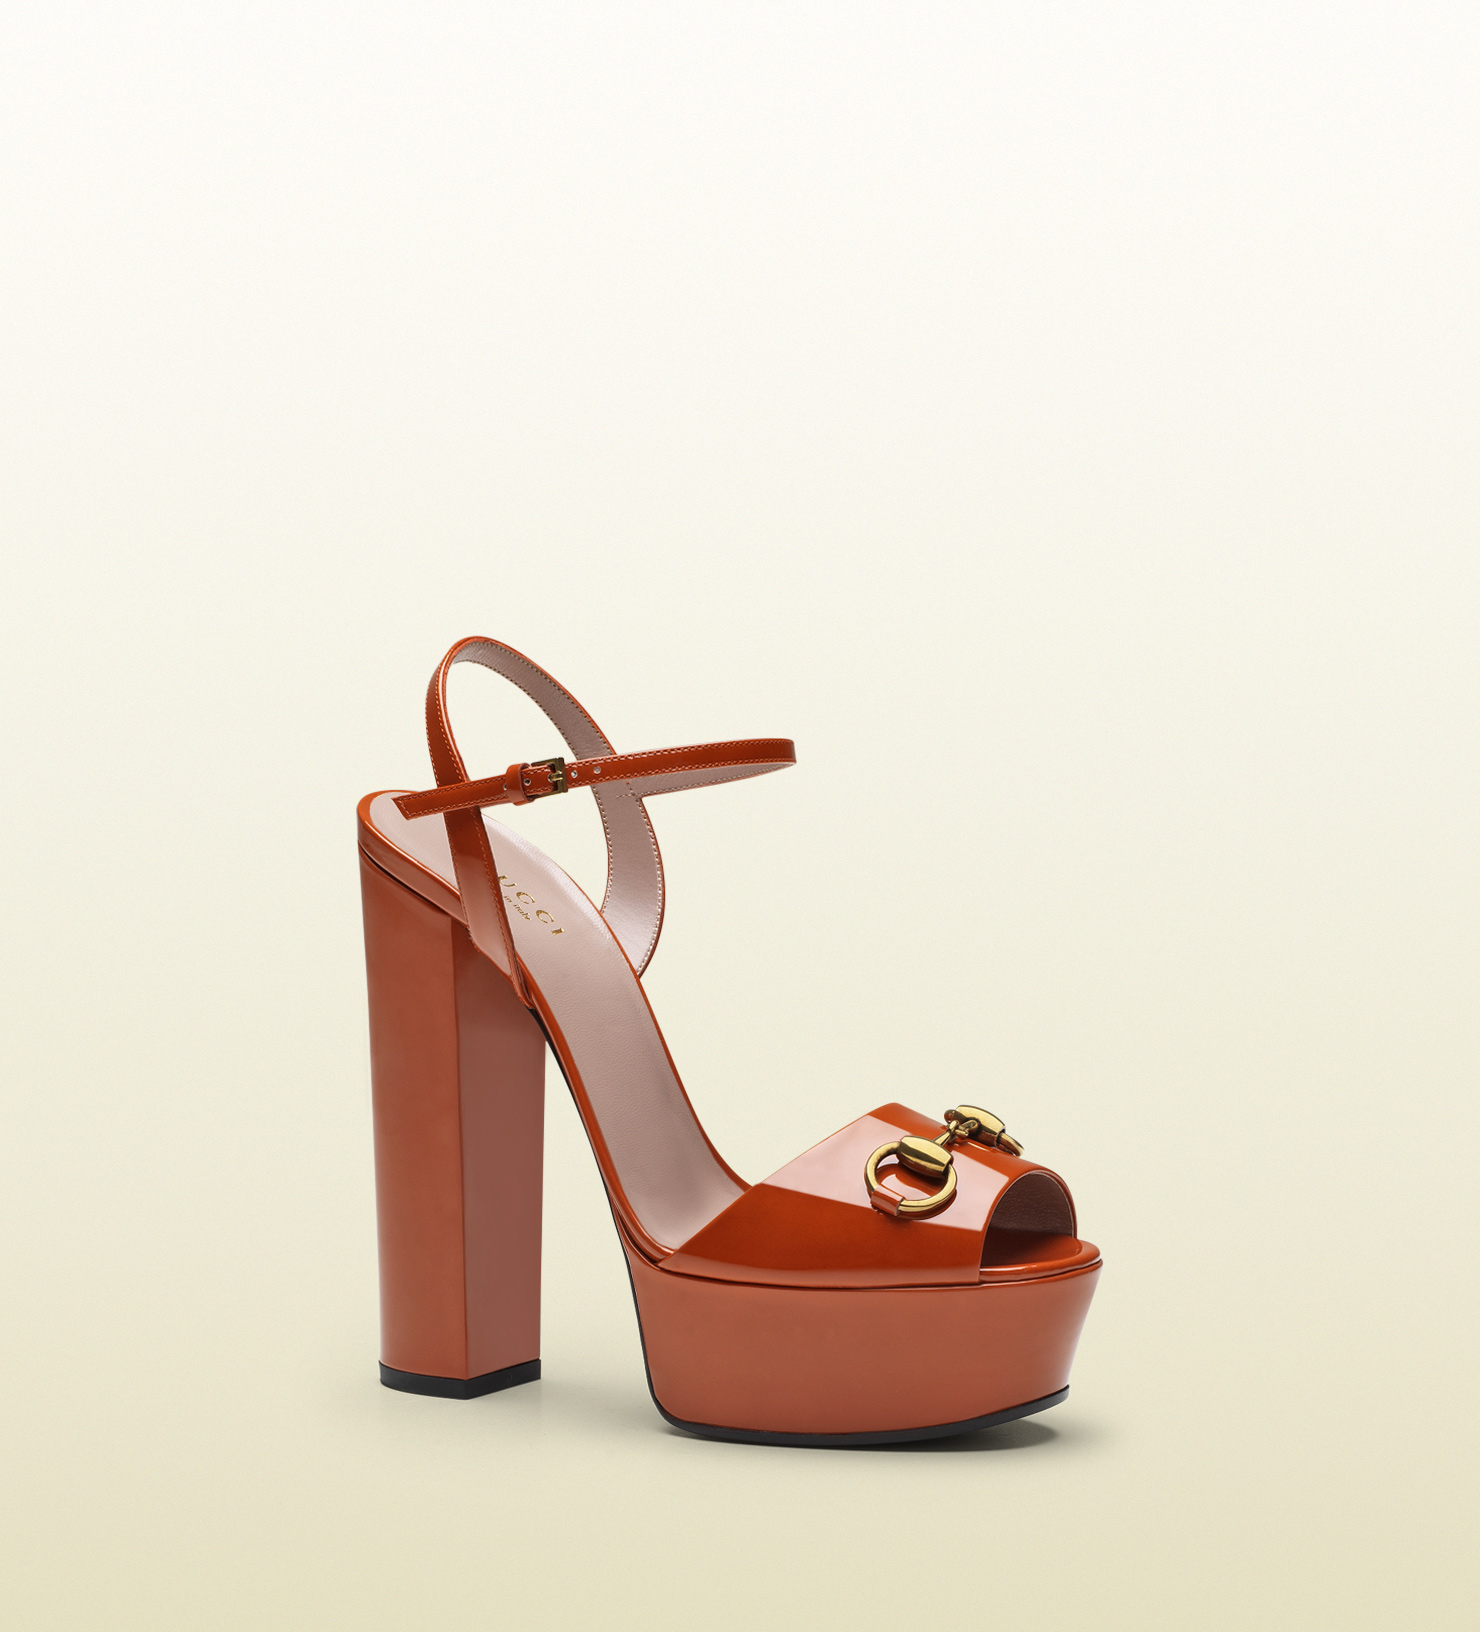 Gucci Patent Leather Platform Sandal in